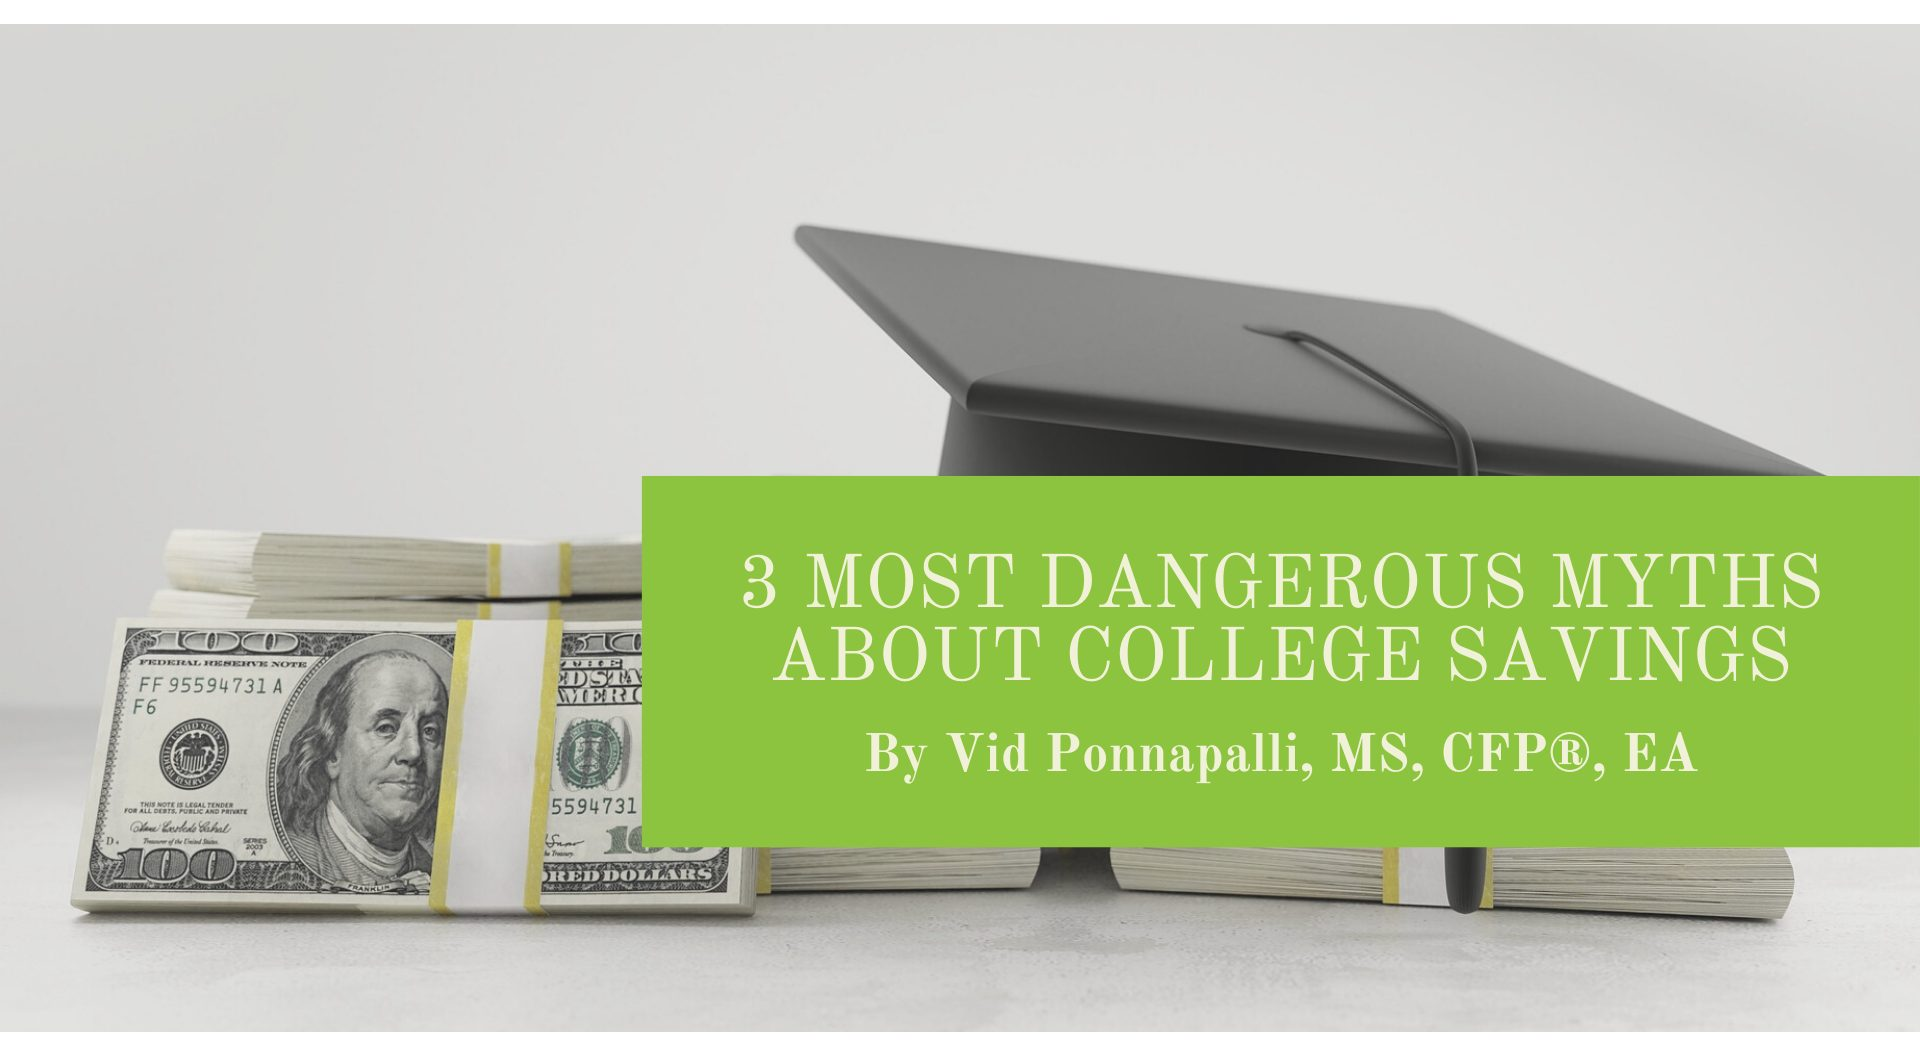 Dangerous myths about college savings